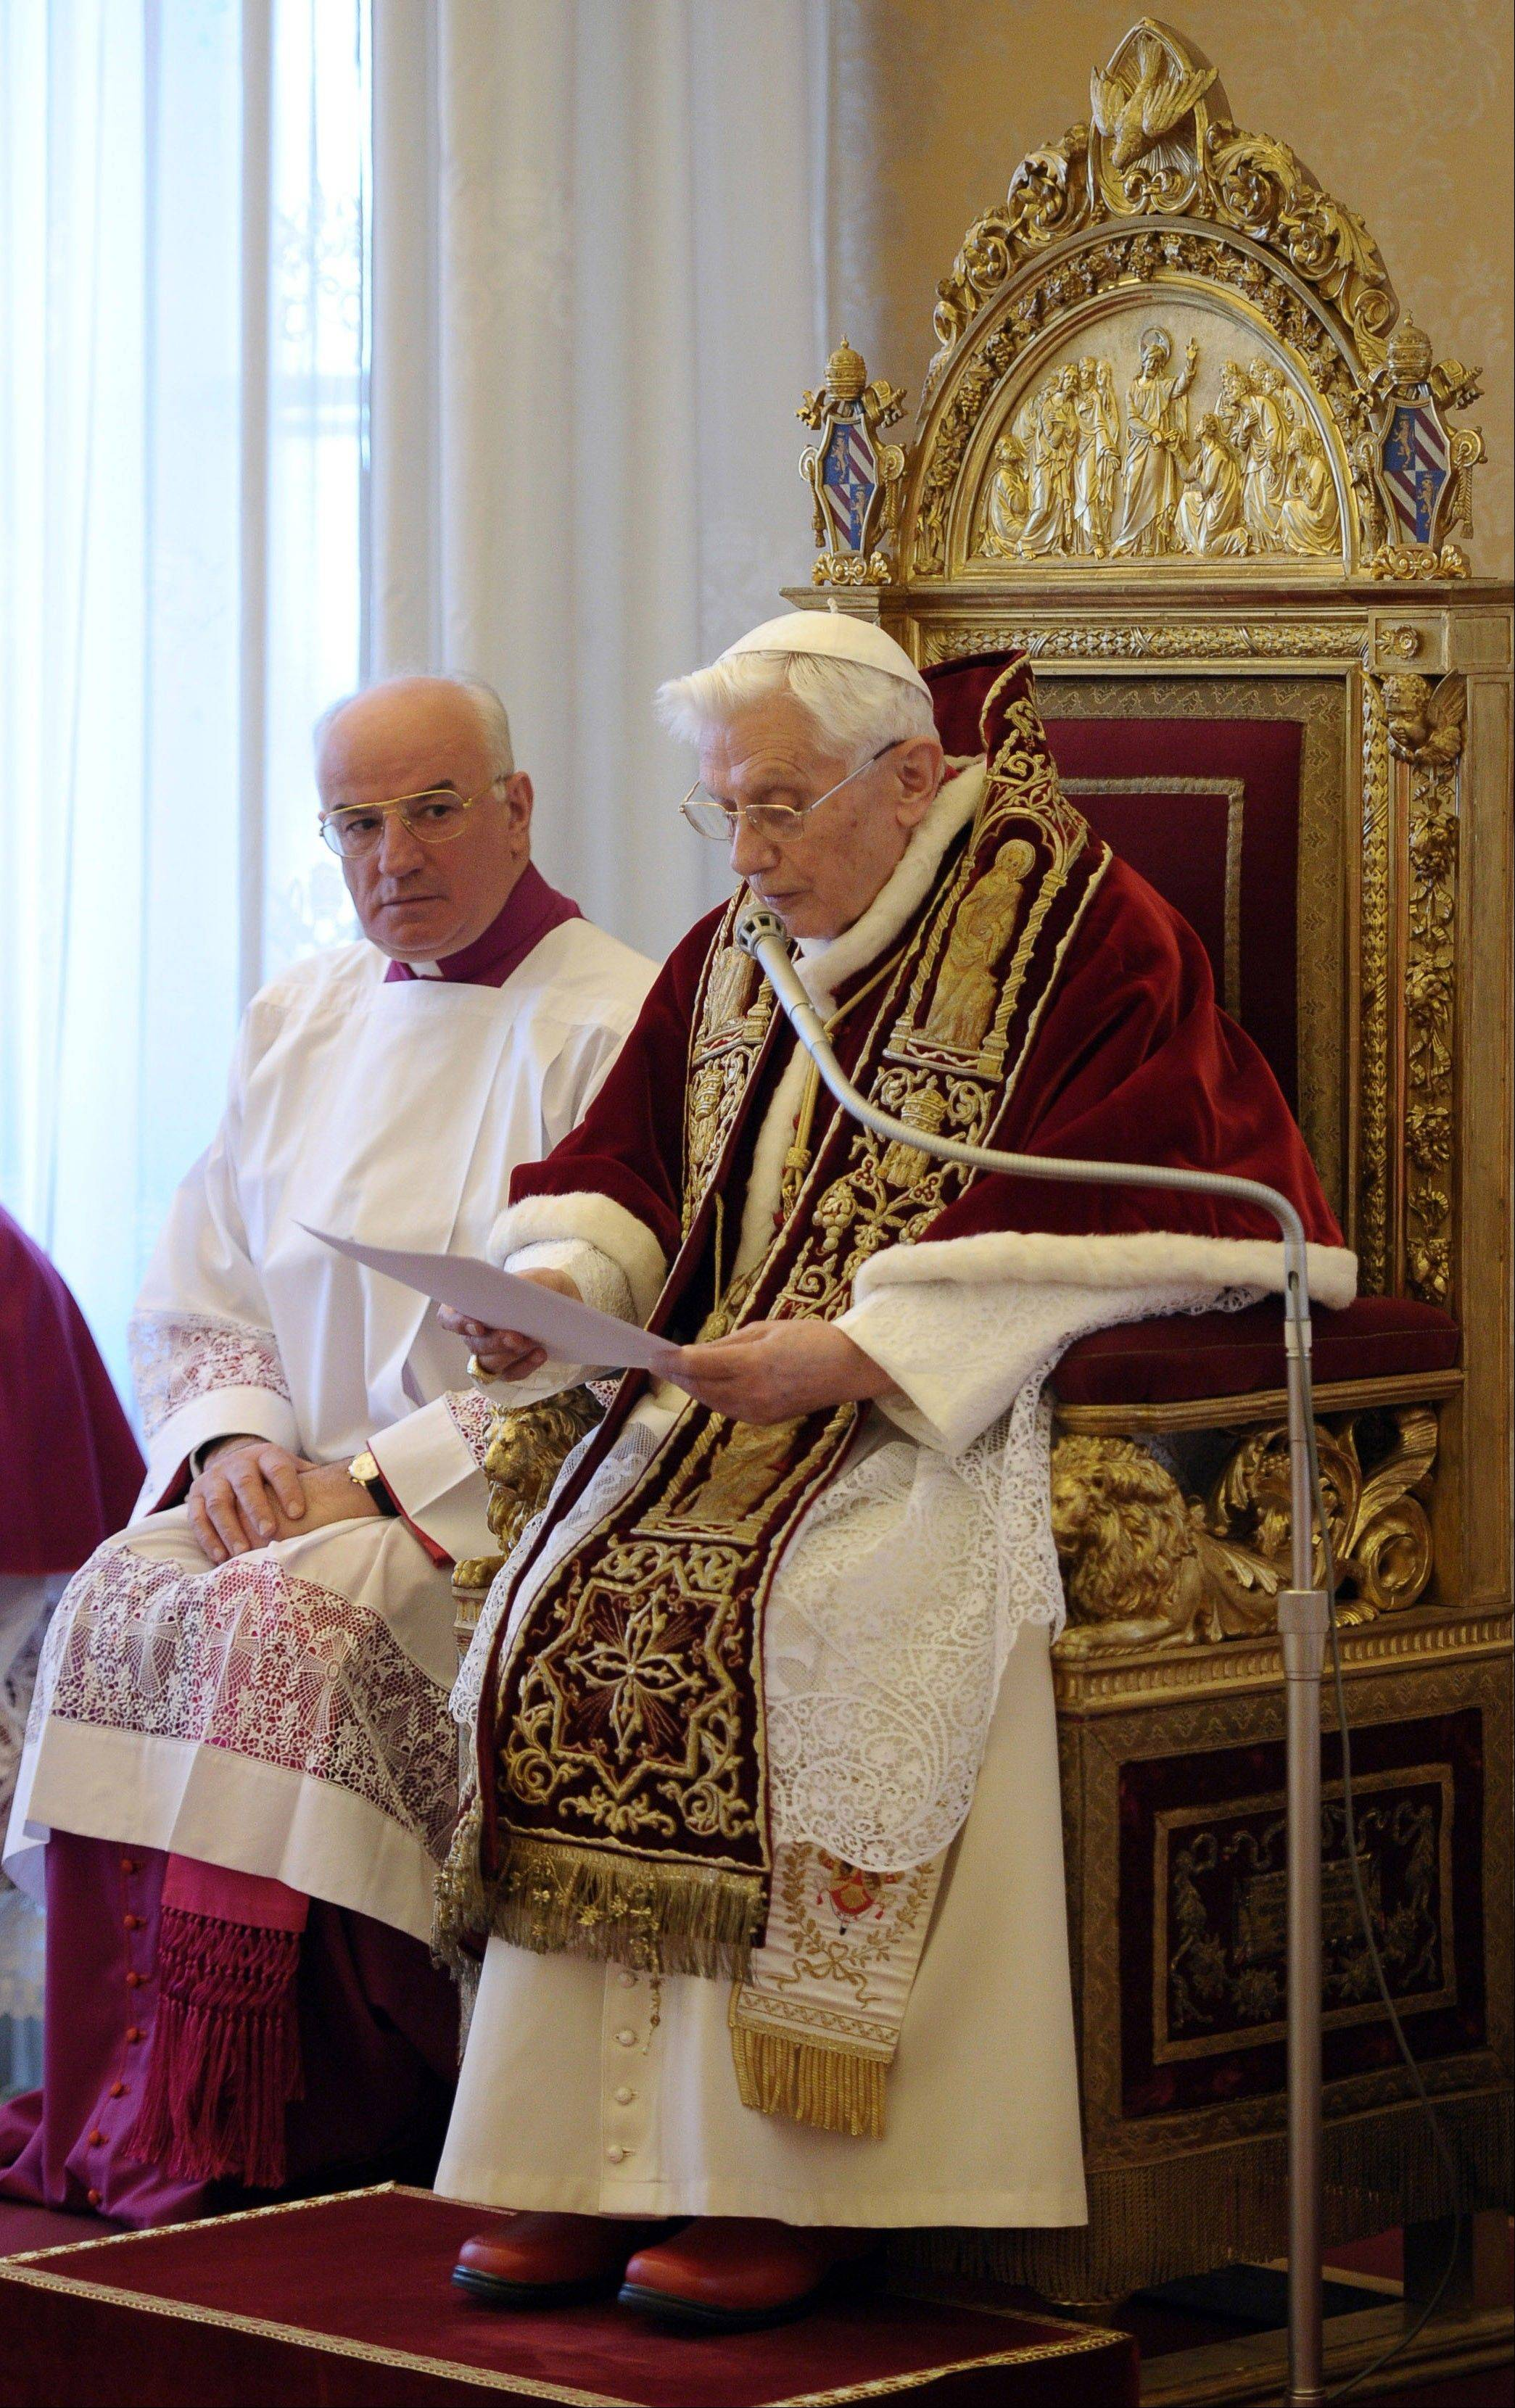 Mons. Franco Comaldo, a pope aide, left, looks at Pope Benedict XVI as he reads a document in Latin where he announces his resignation Monday during a meeting of Vatican cardinals at the Vatican.